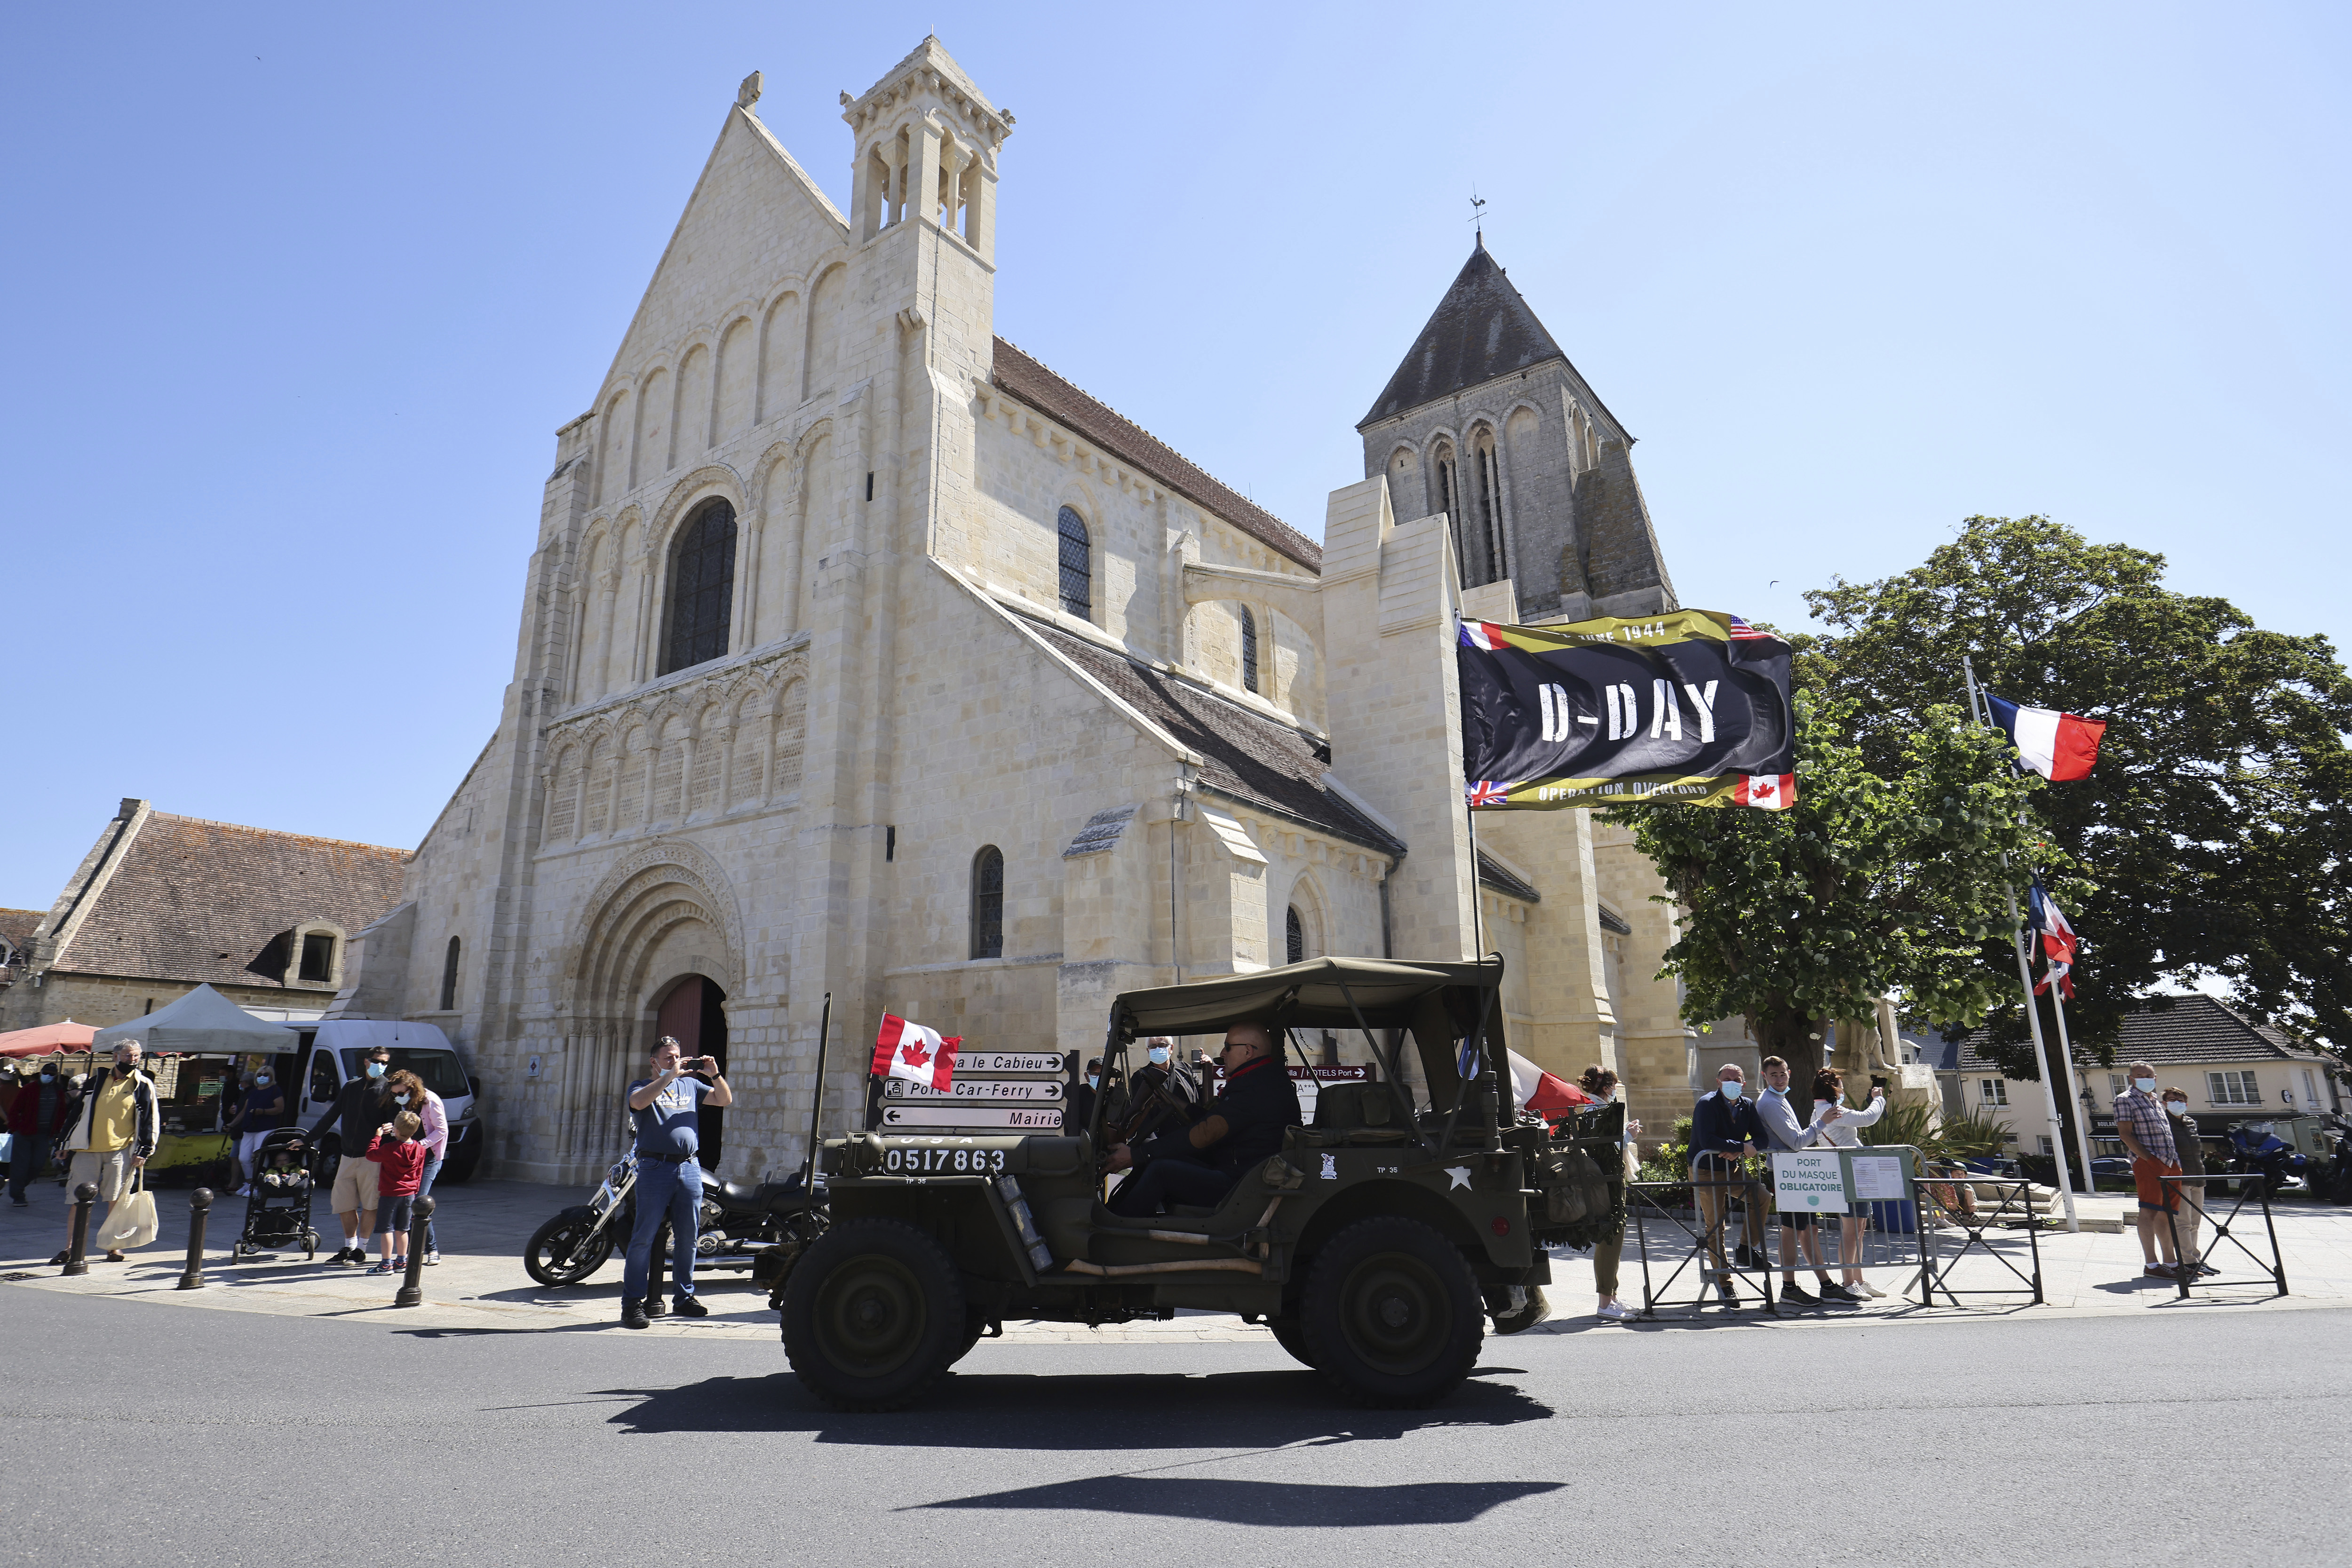 World War II history enthusiasts parade in WWII vehicles in Ouistreham, Normandy.